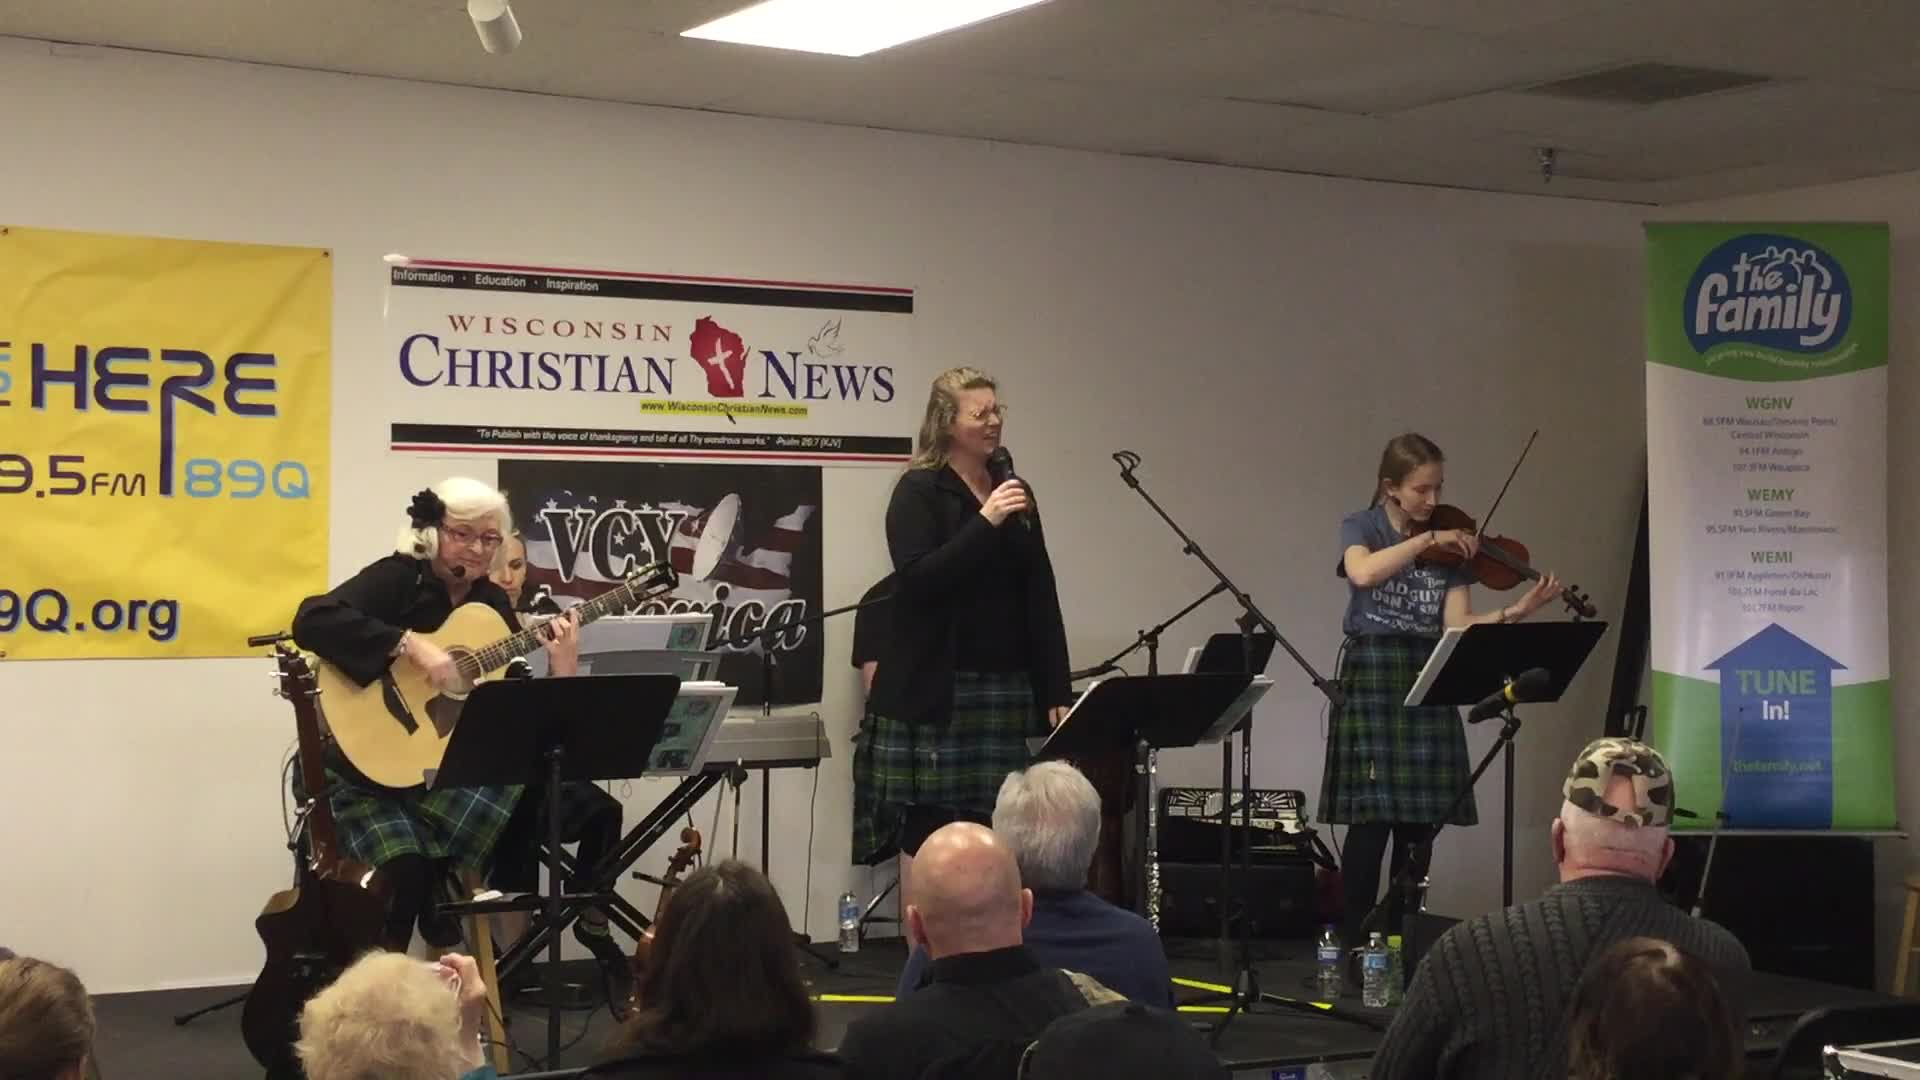 The MPK Christian Celtic Band at the 2017 Wisconsin Christian News Ministry Expo and Conference